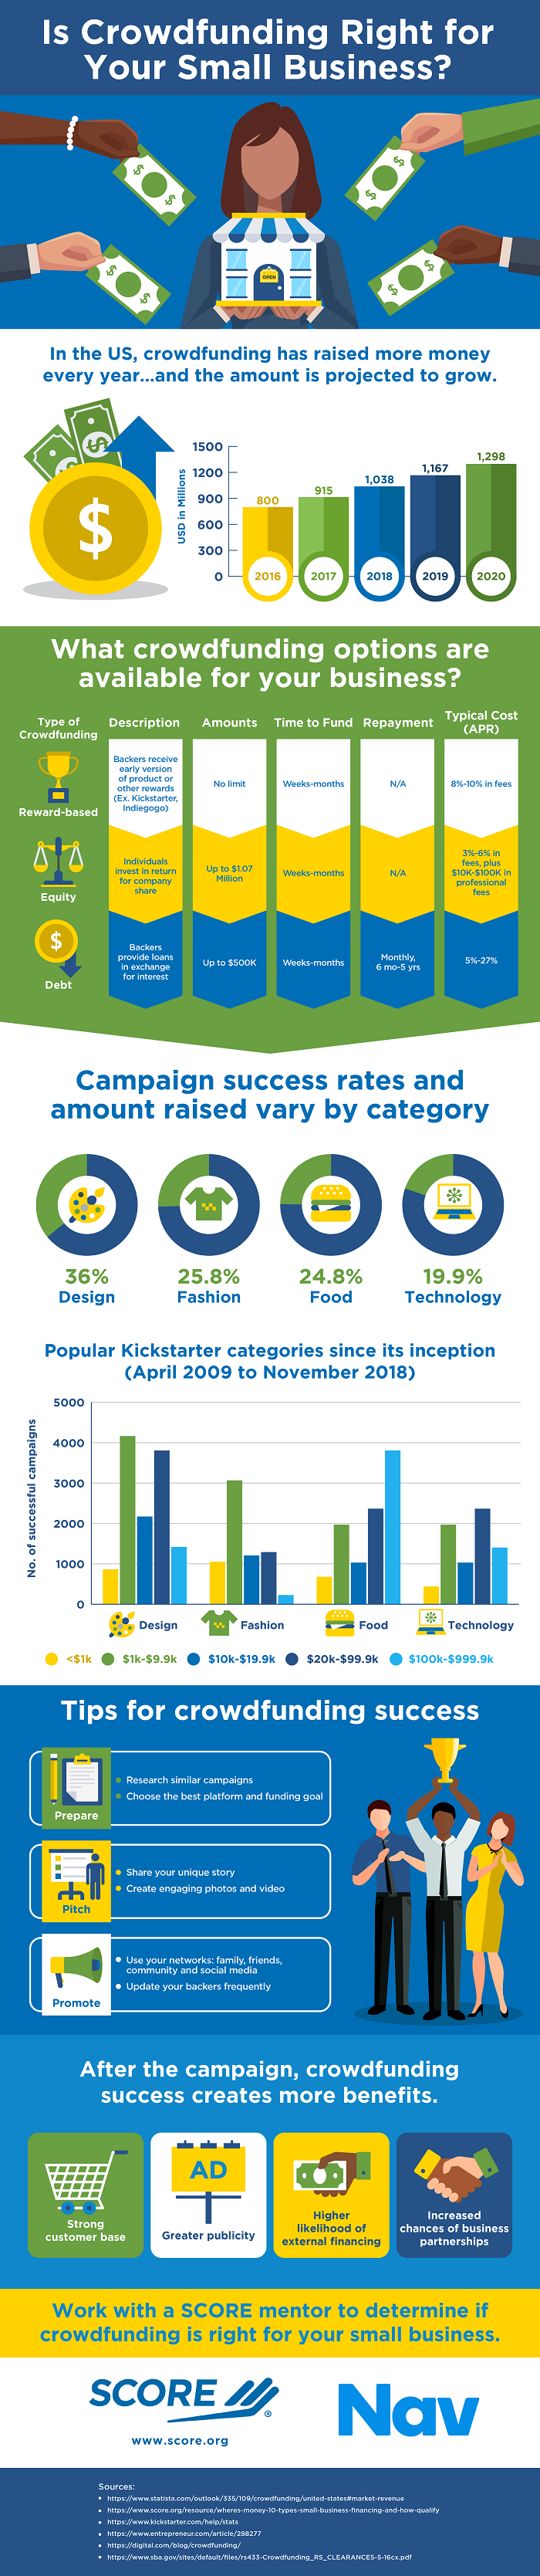 Infographic: Is Crowdfunding Right for Your Small Business?